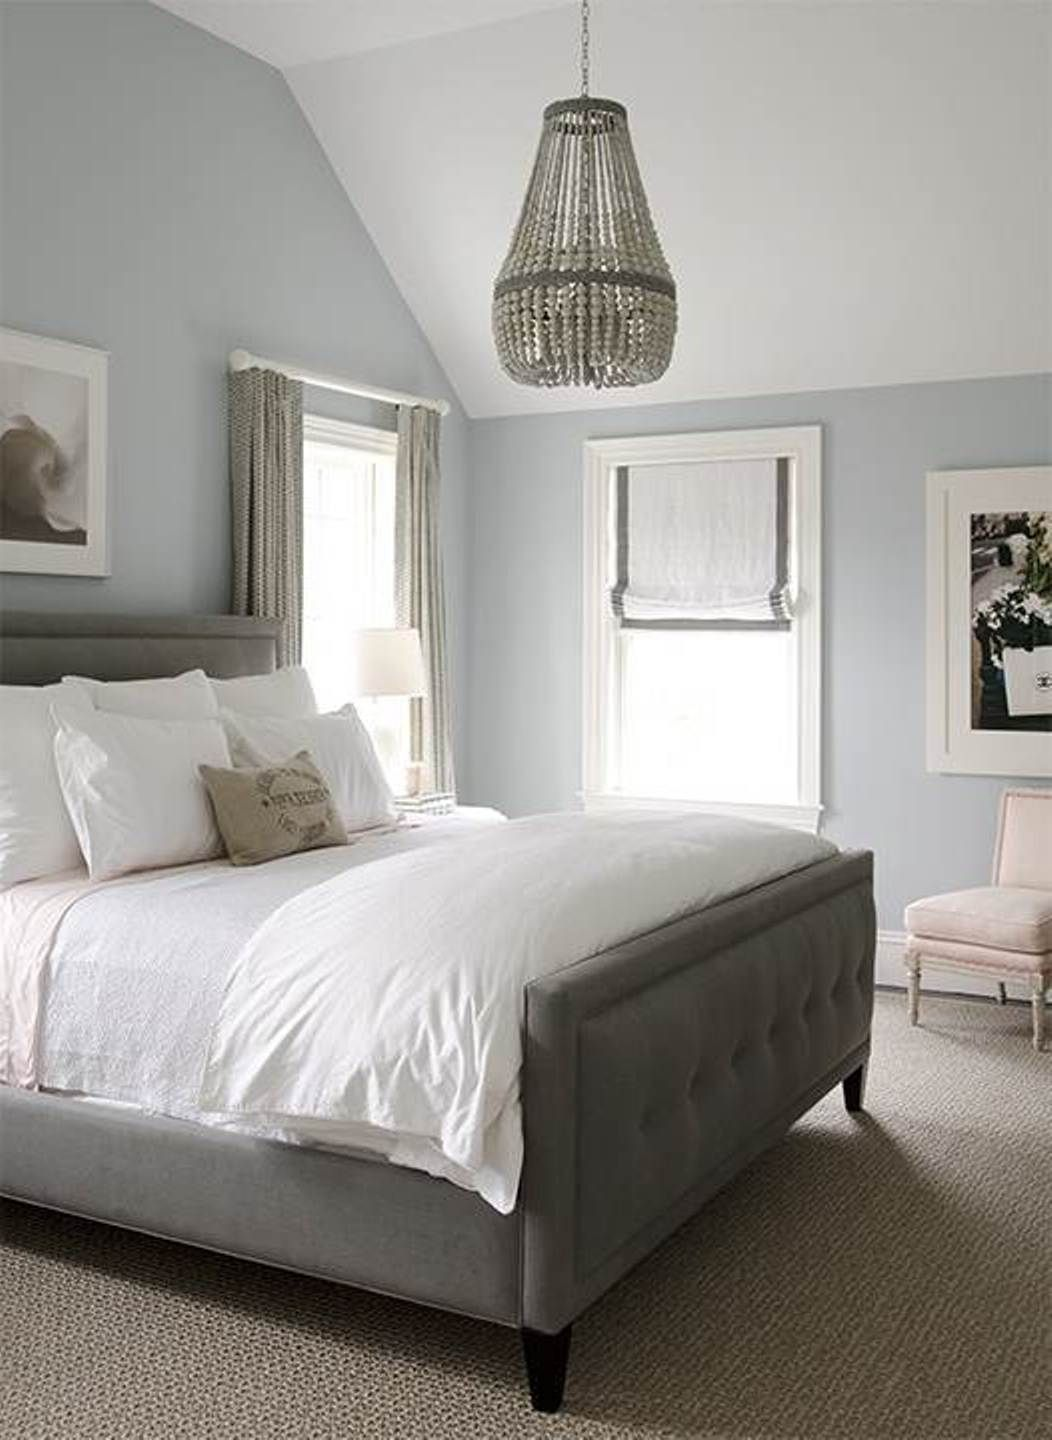 love the grey cute master bedroom ideas on a budget 15995 | 0acb0d95c13eb16c0160f1d8563f6ce8